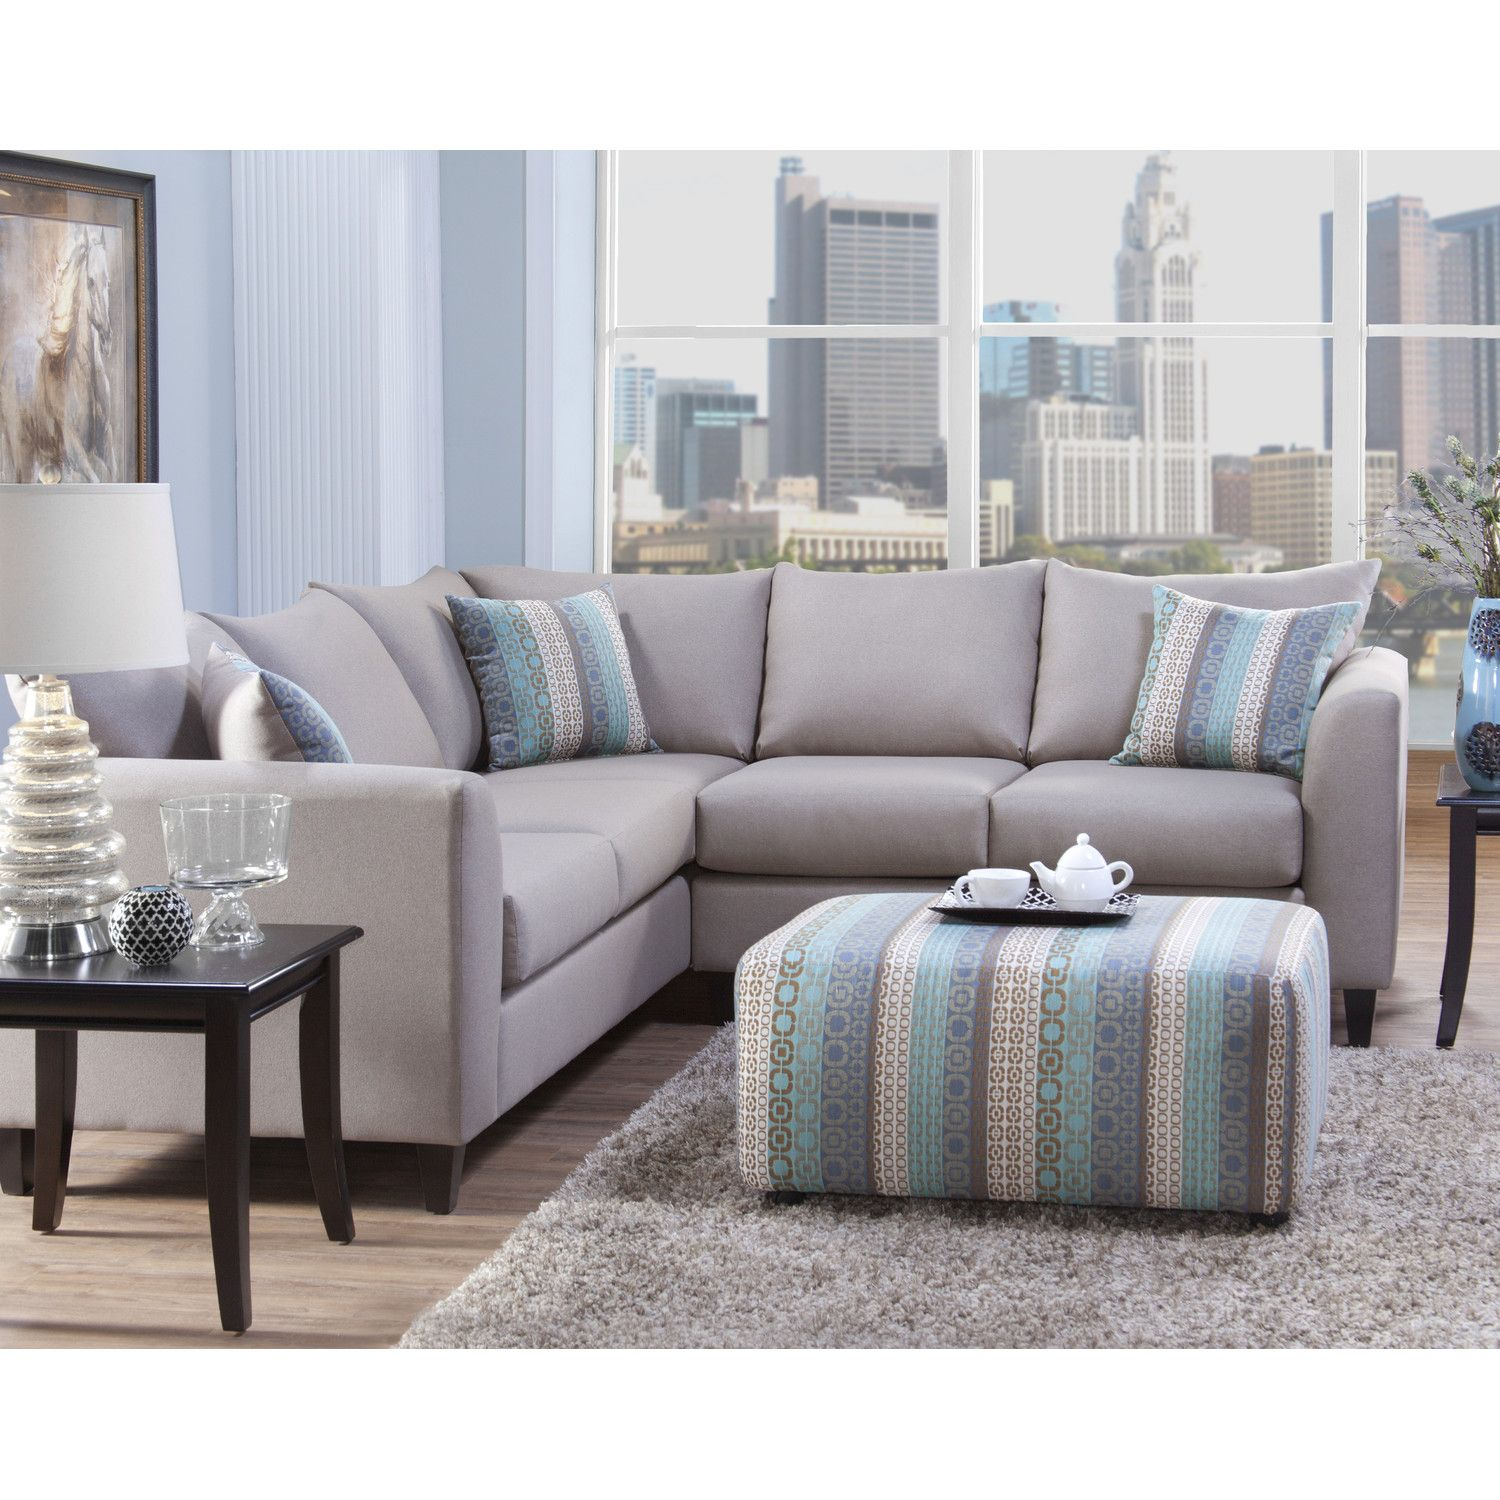 FREE SHIPPING! Shop Wayfair for Serta Upholstery Sectional - Great ...